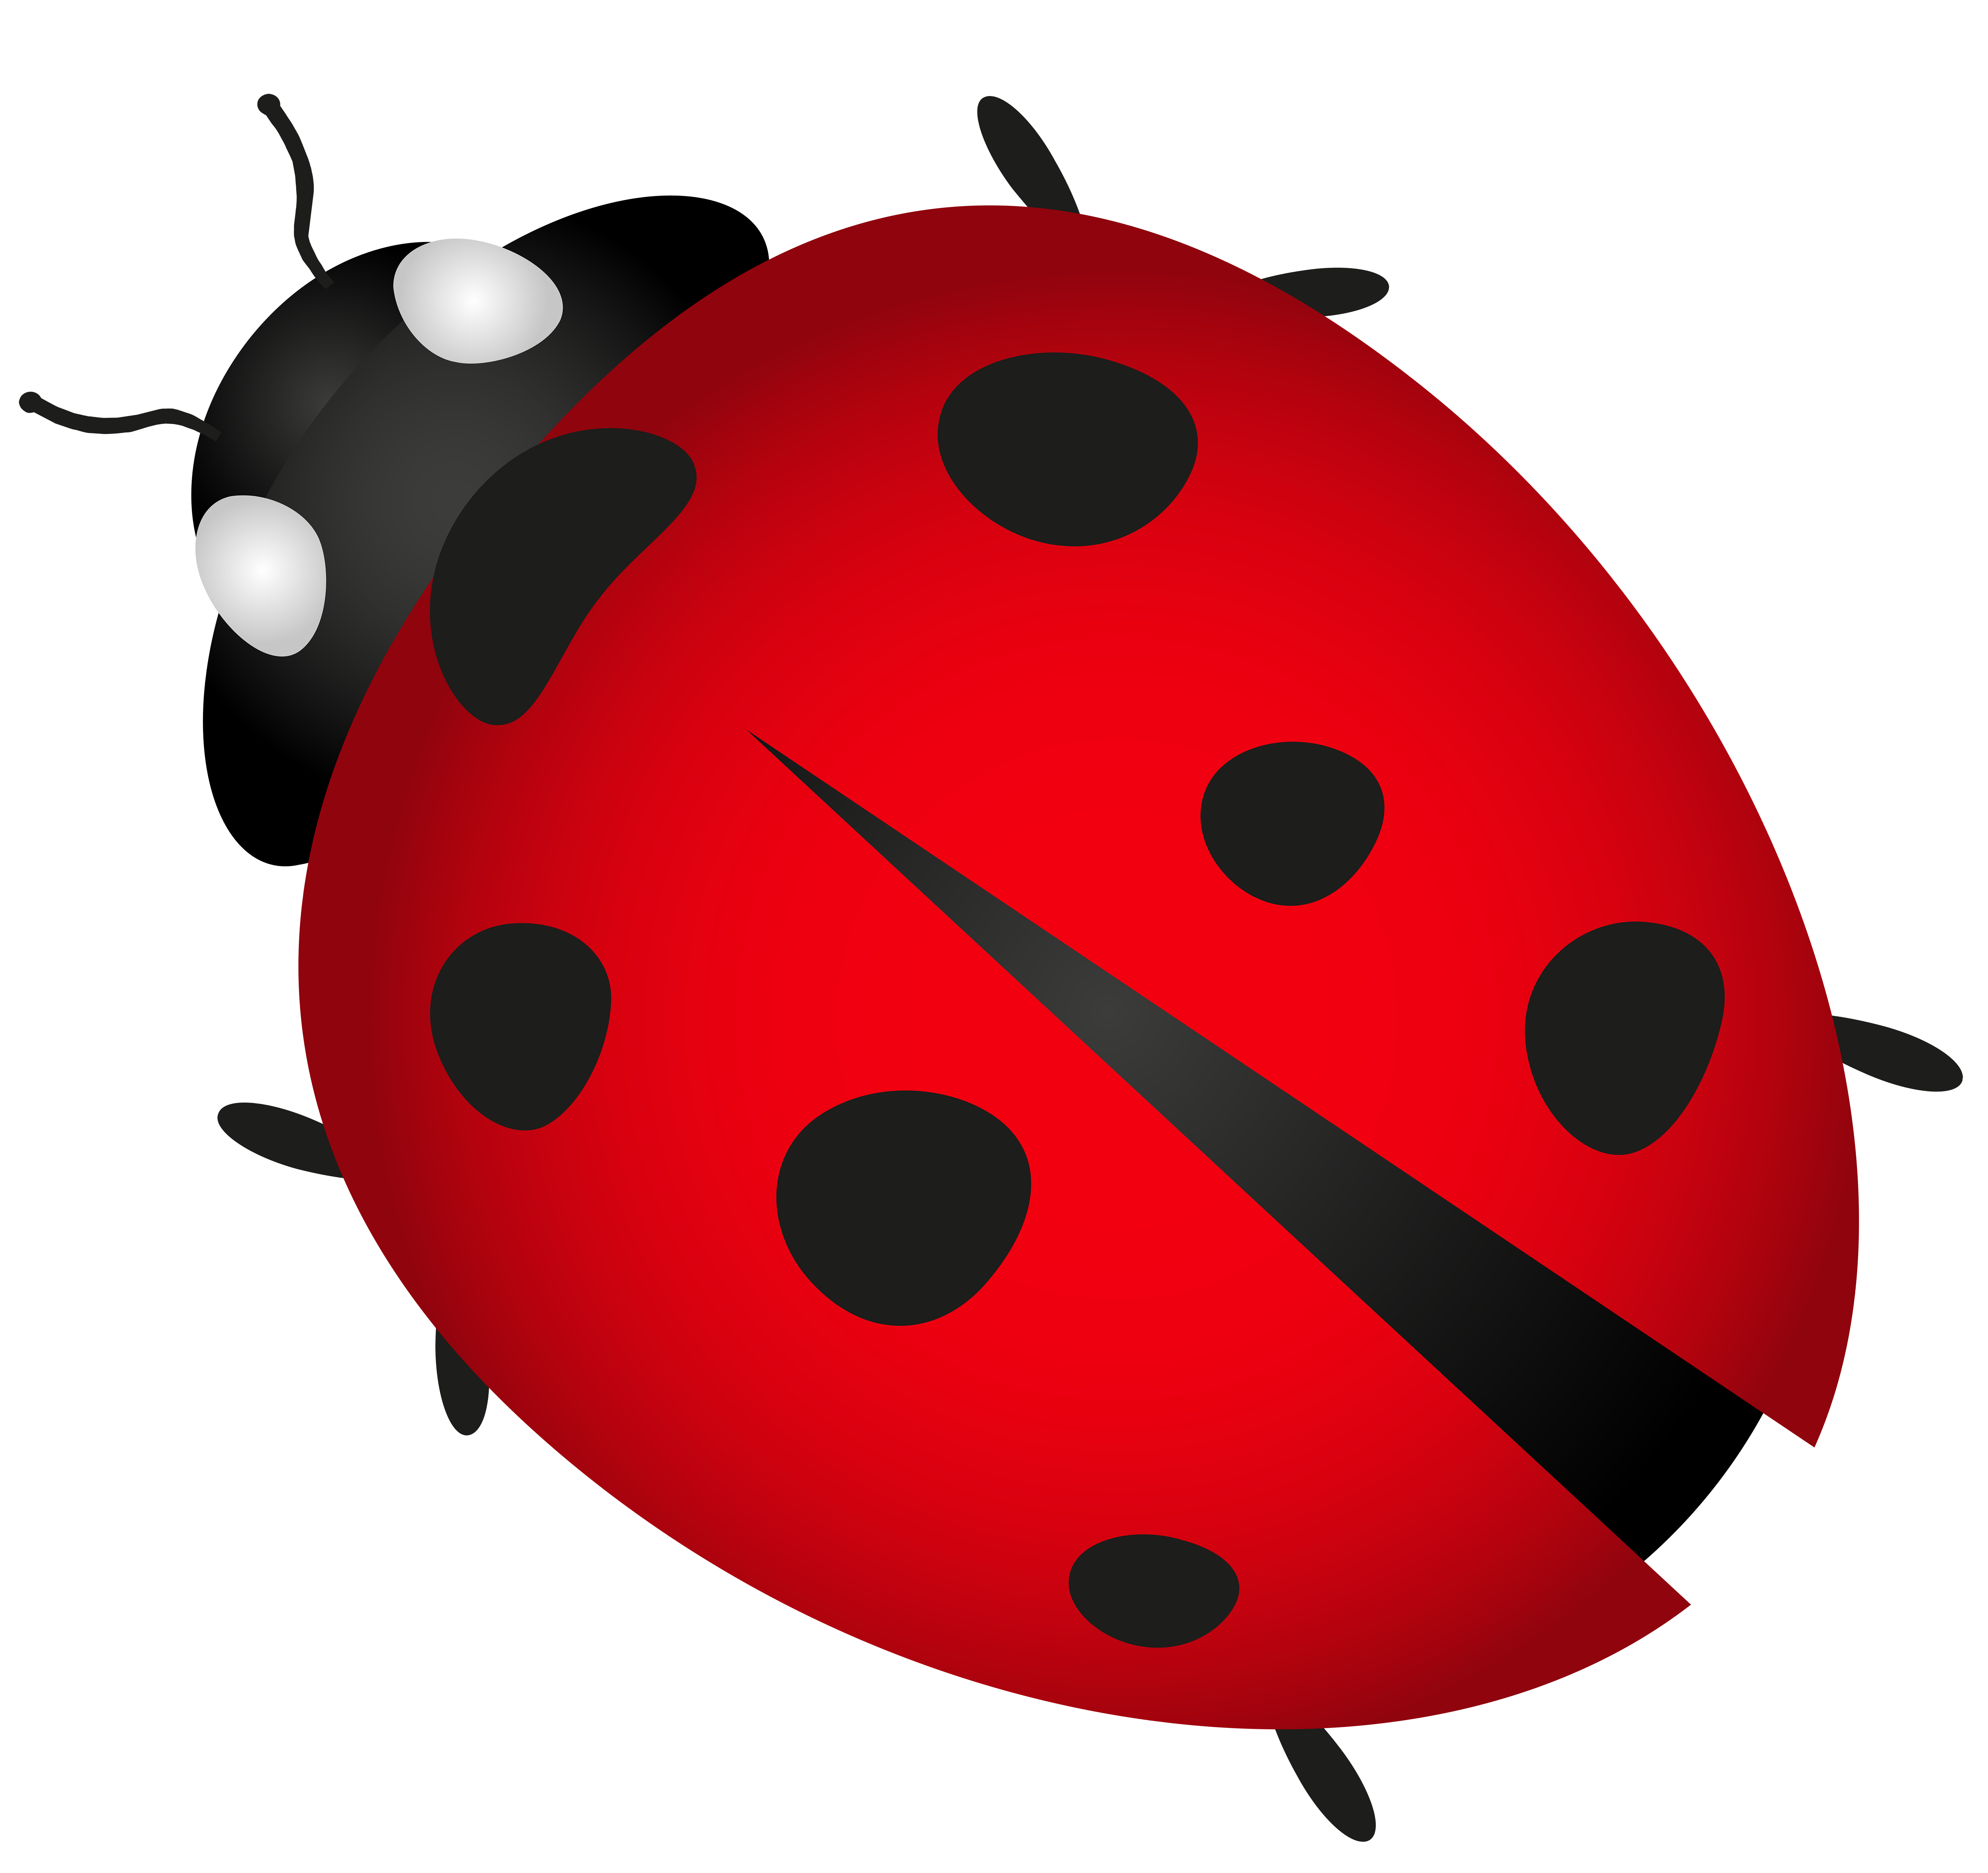 262 Lady Bug free clipart.